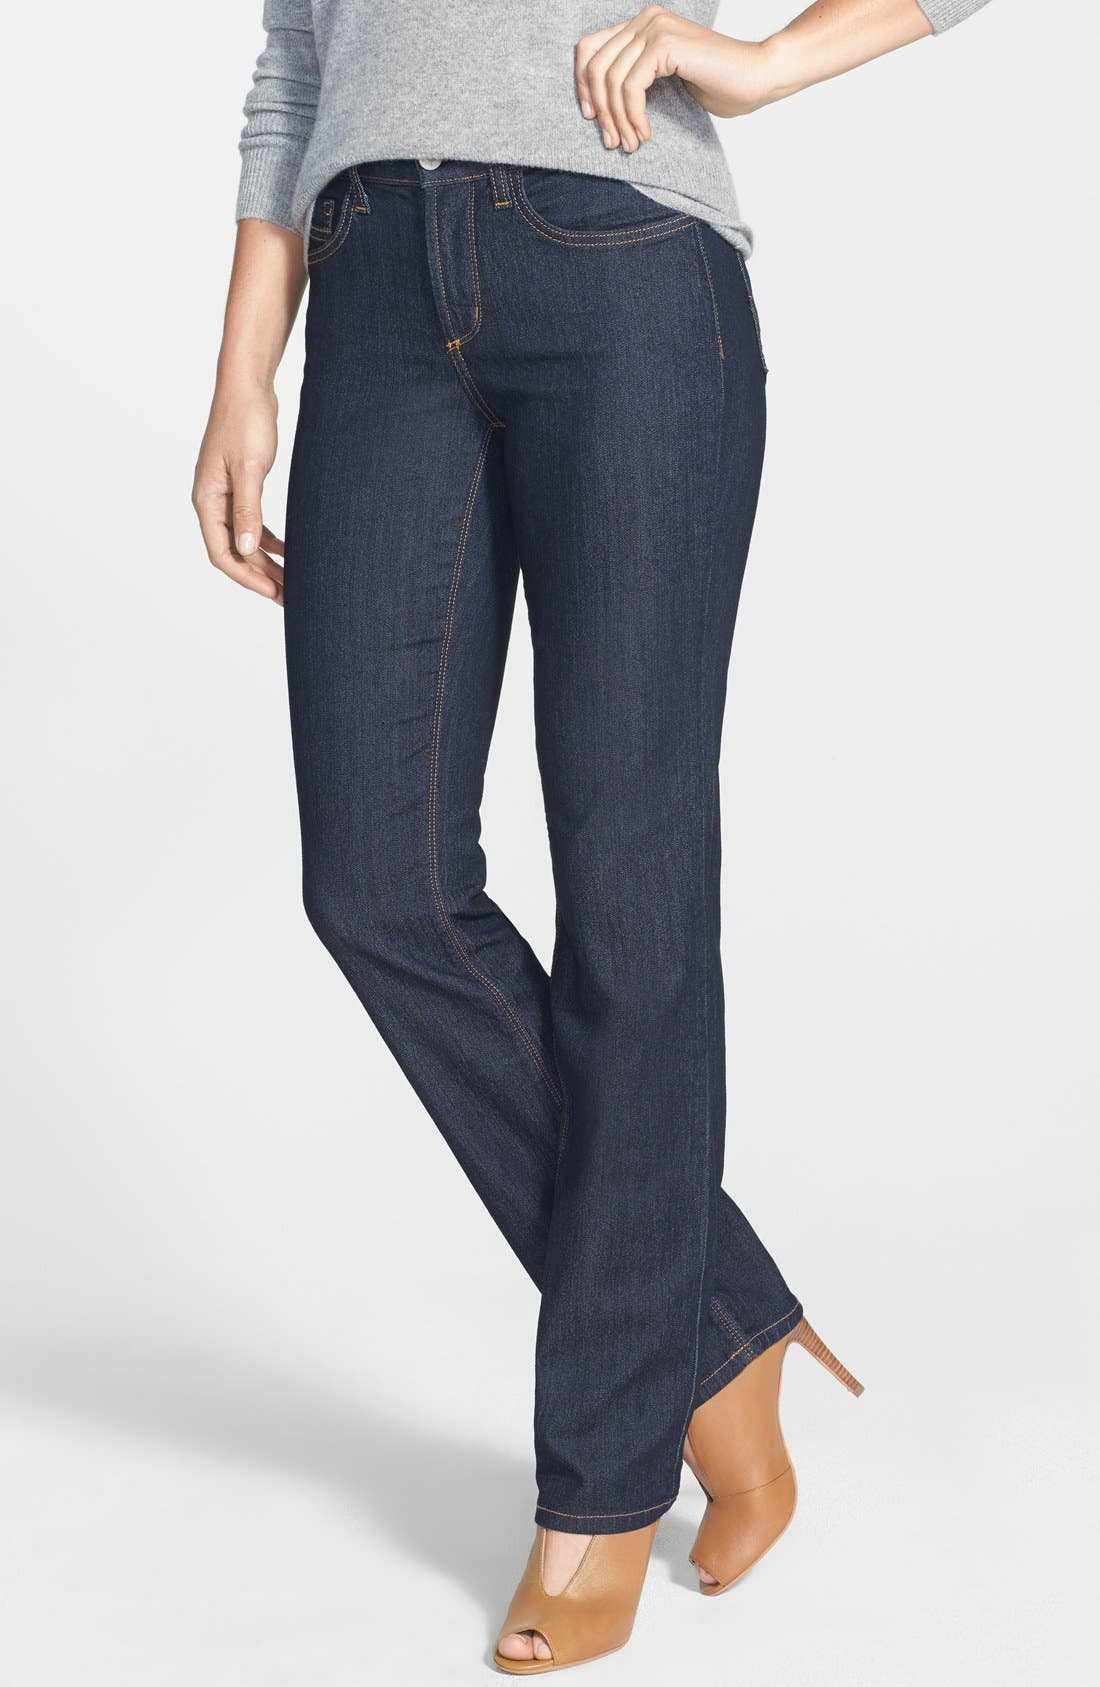 Alternate Image 1 Selected - NYDJ 'Marilyn' Stretch Straight Leg Jeans (Dark Enzyme) (Regular & Petite)